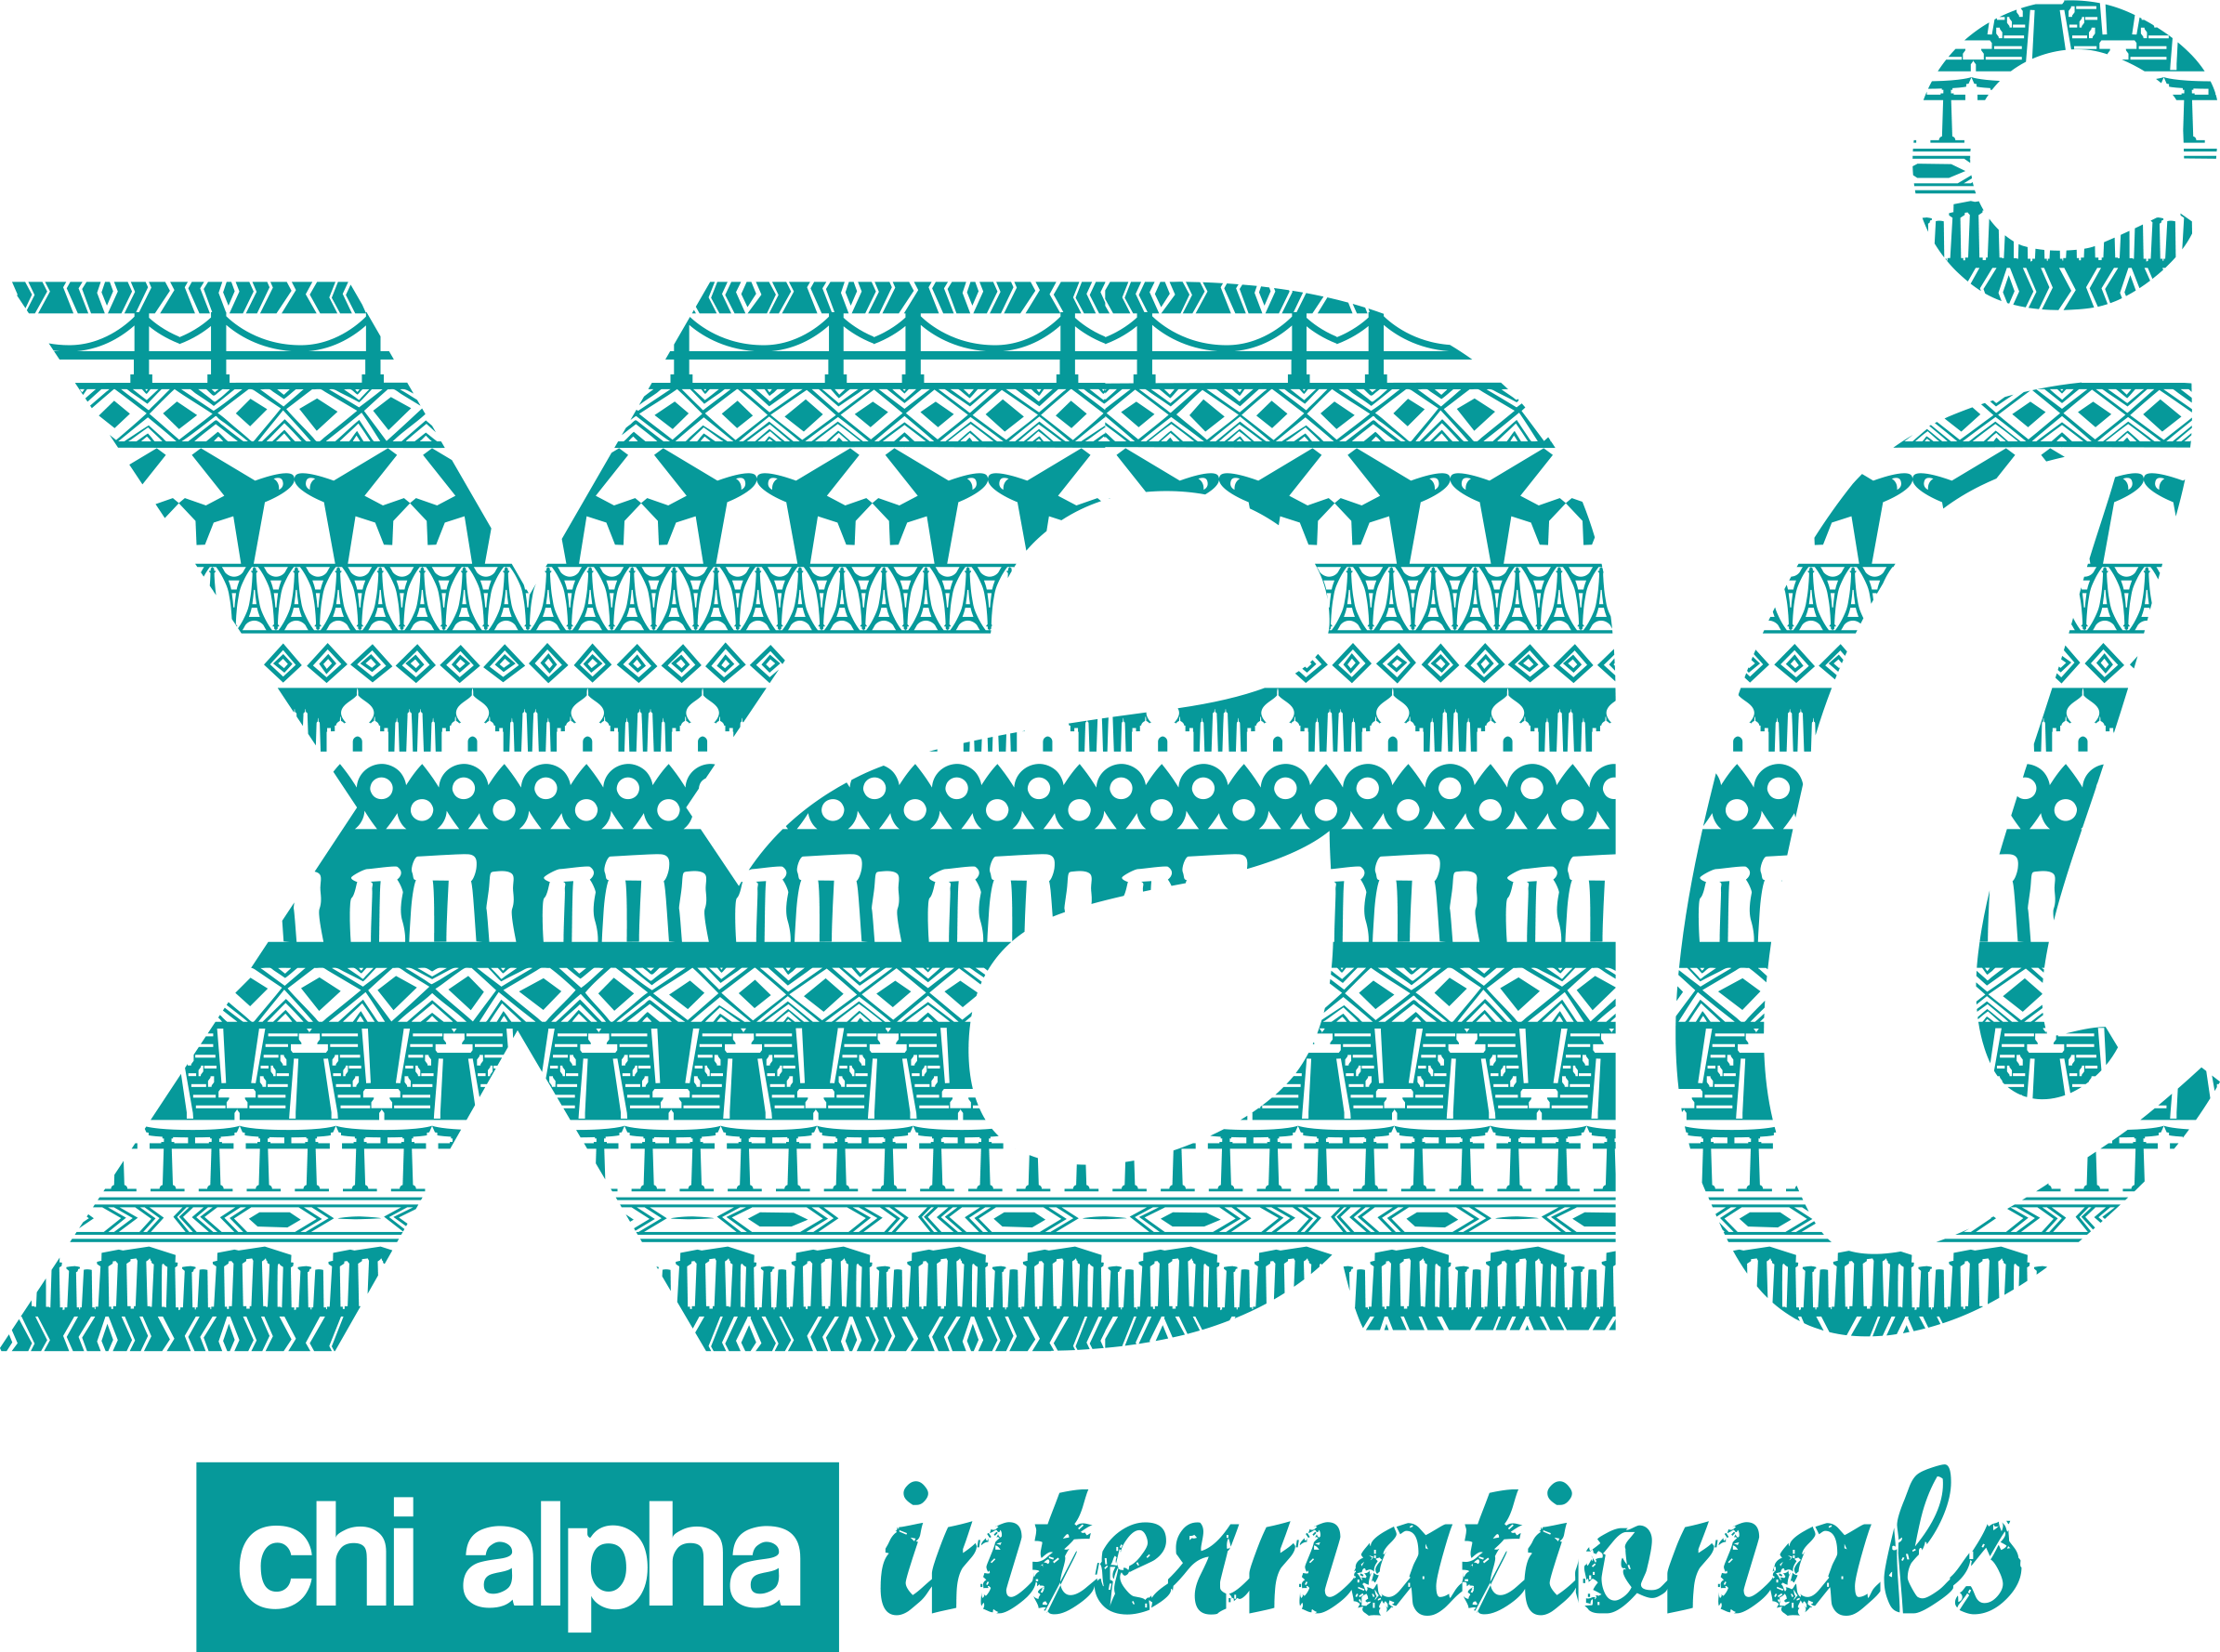 Chi Alpha Internationals